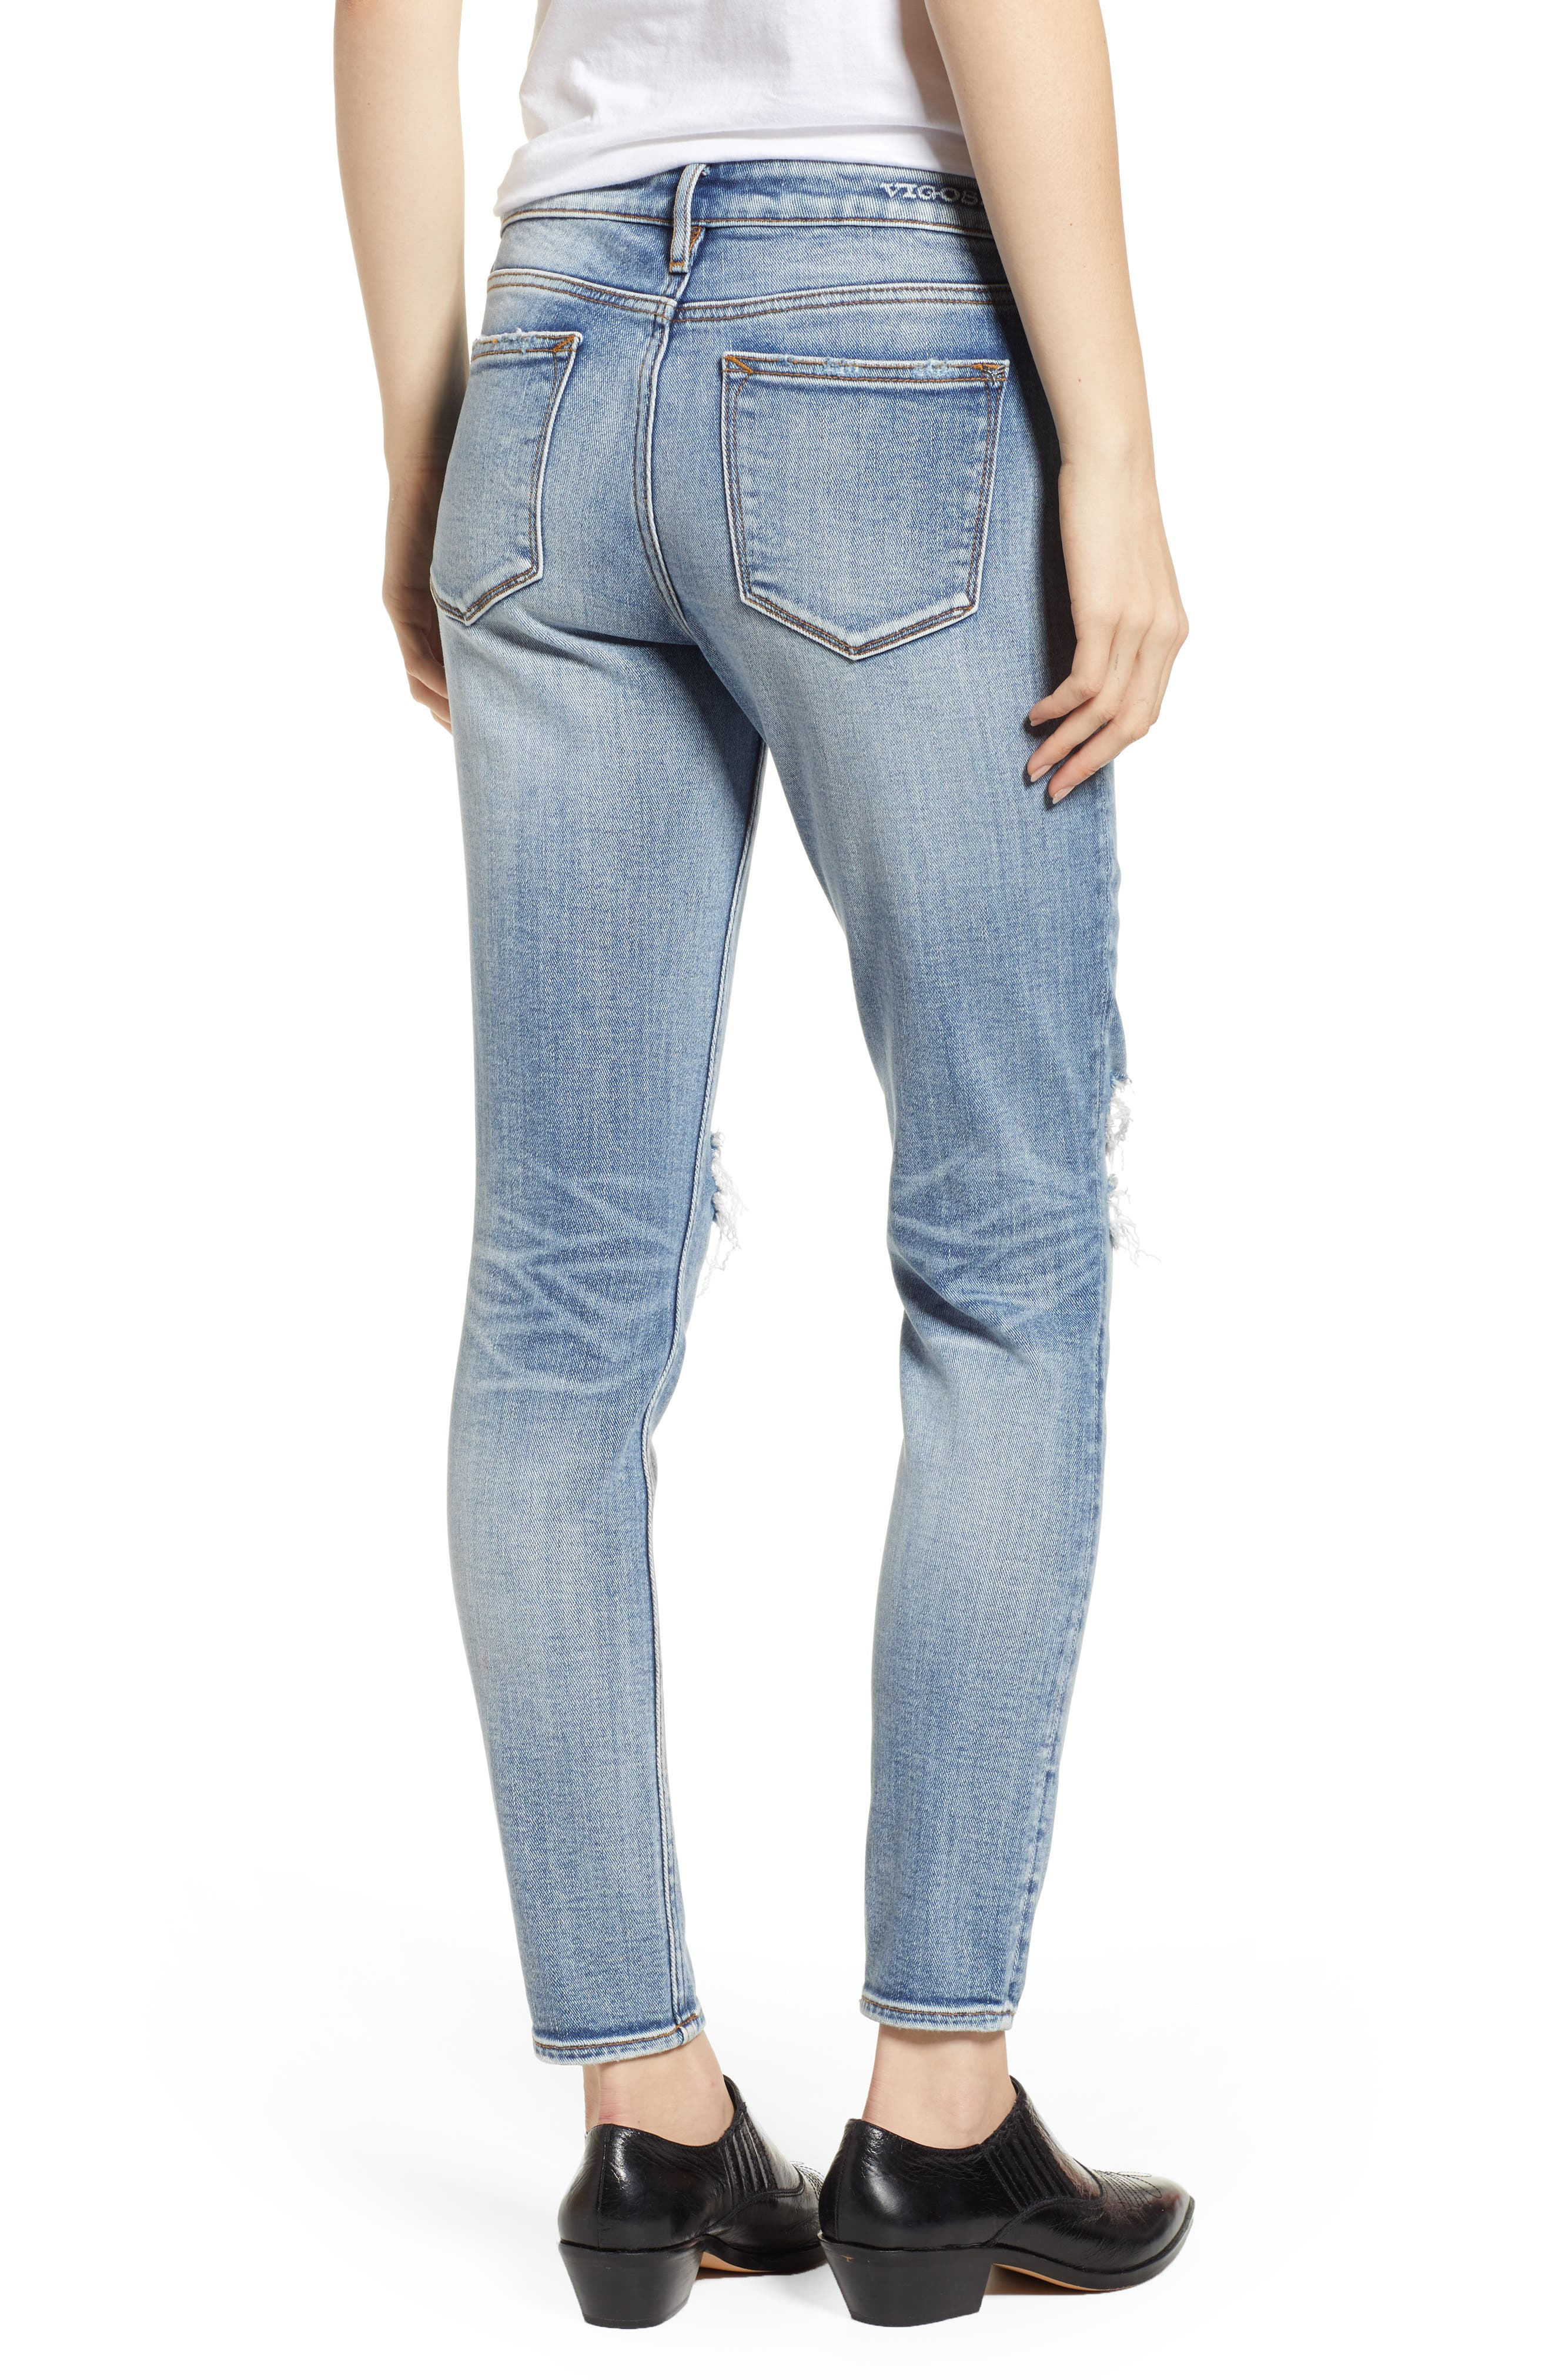 Jagger Ripped Skinny Jeans,                             Alternate thumbnail 2, color,                             LIGHT WASH